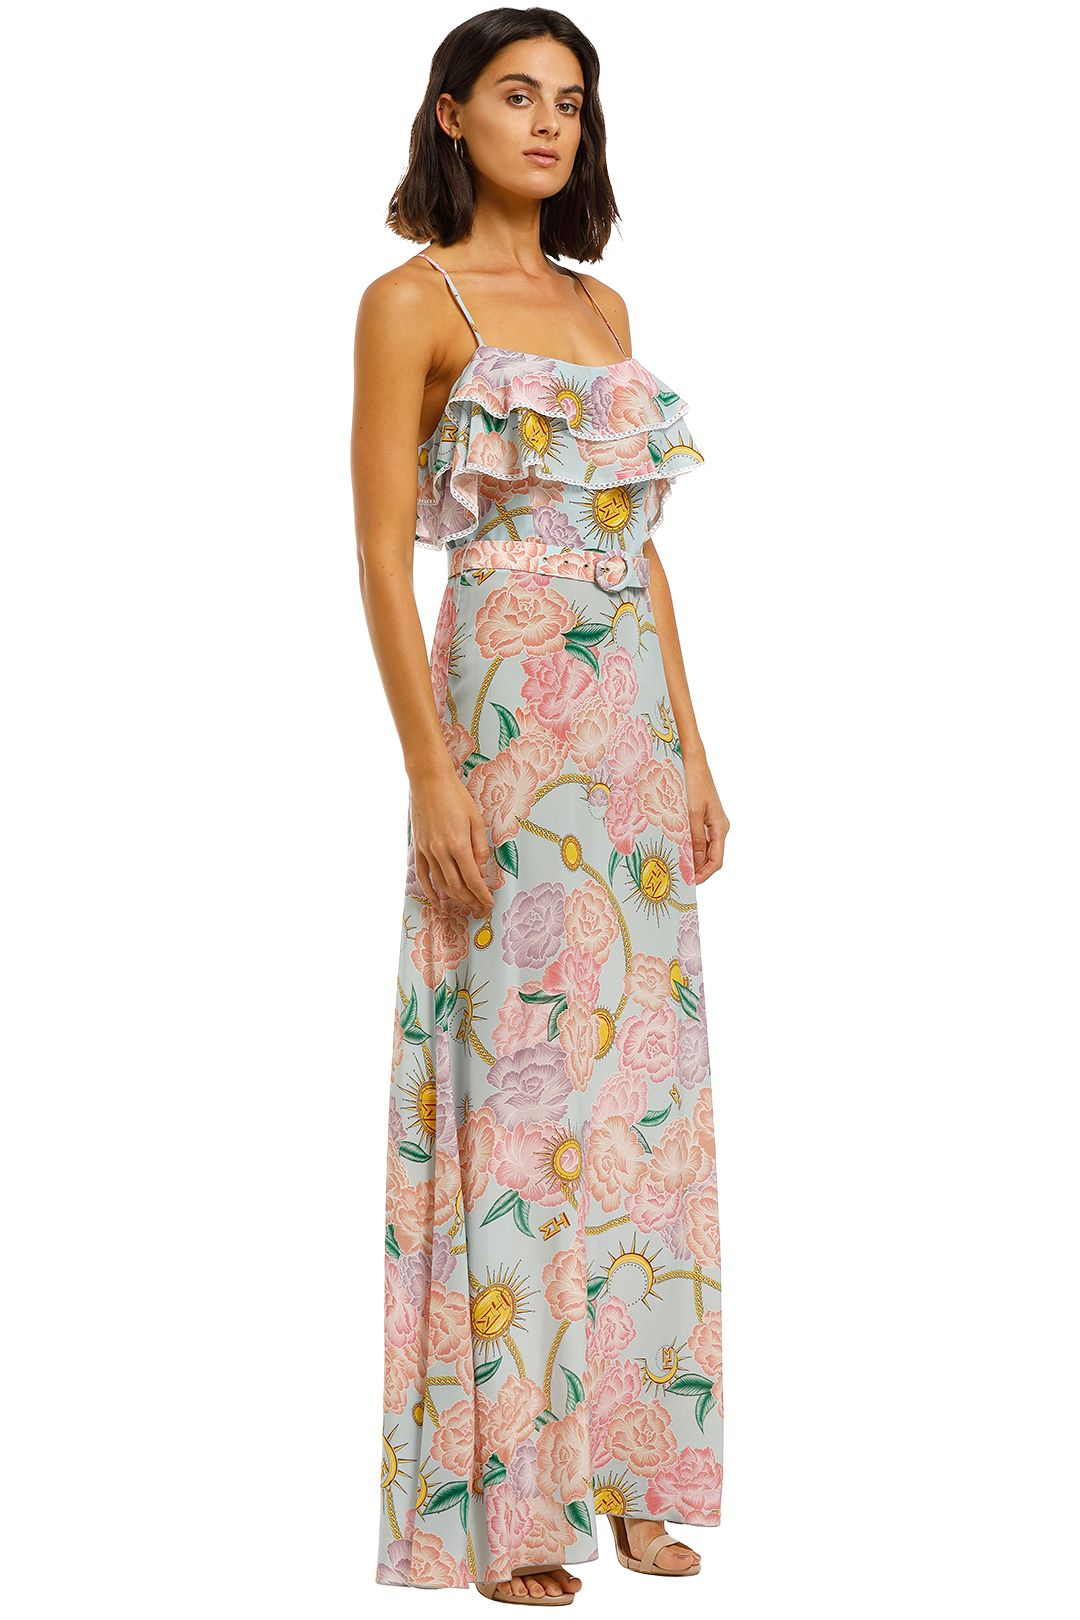 Hayley-Menzies-Maxi-Frill-Dress-Floral-Print-Side